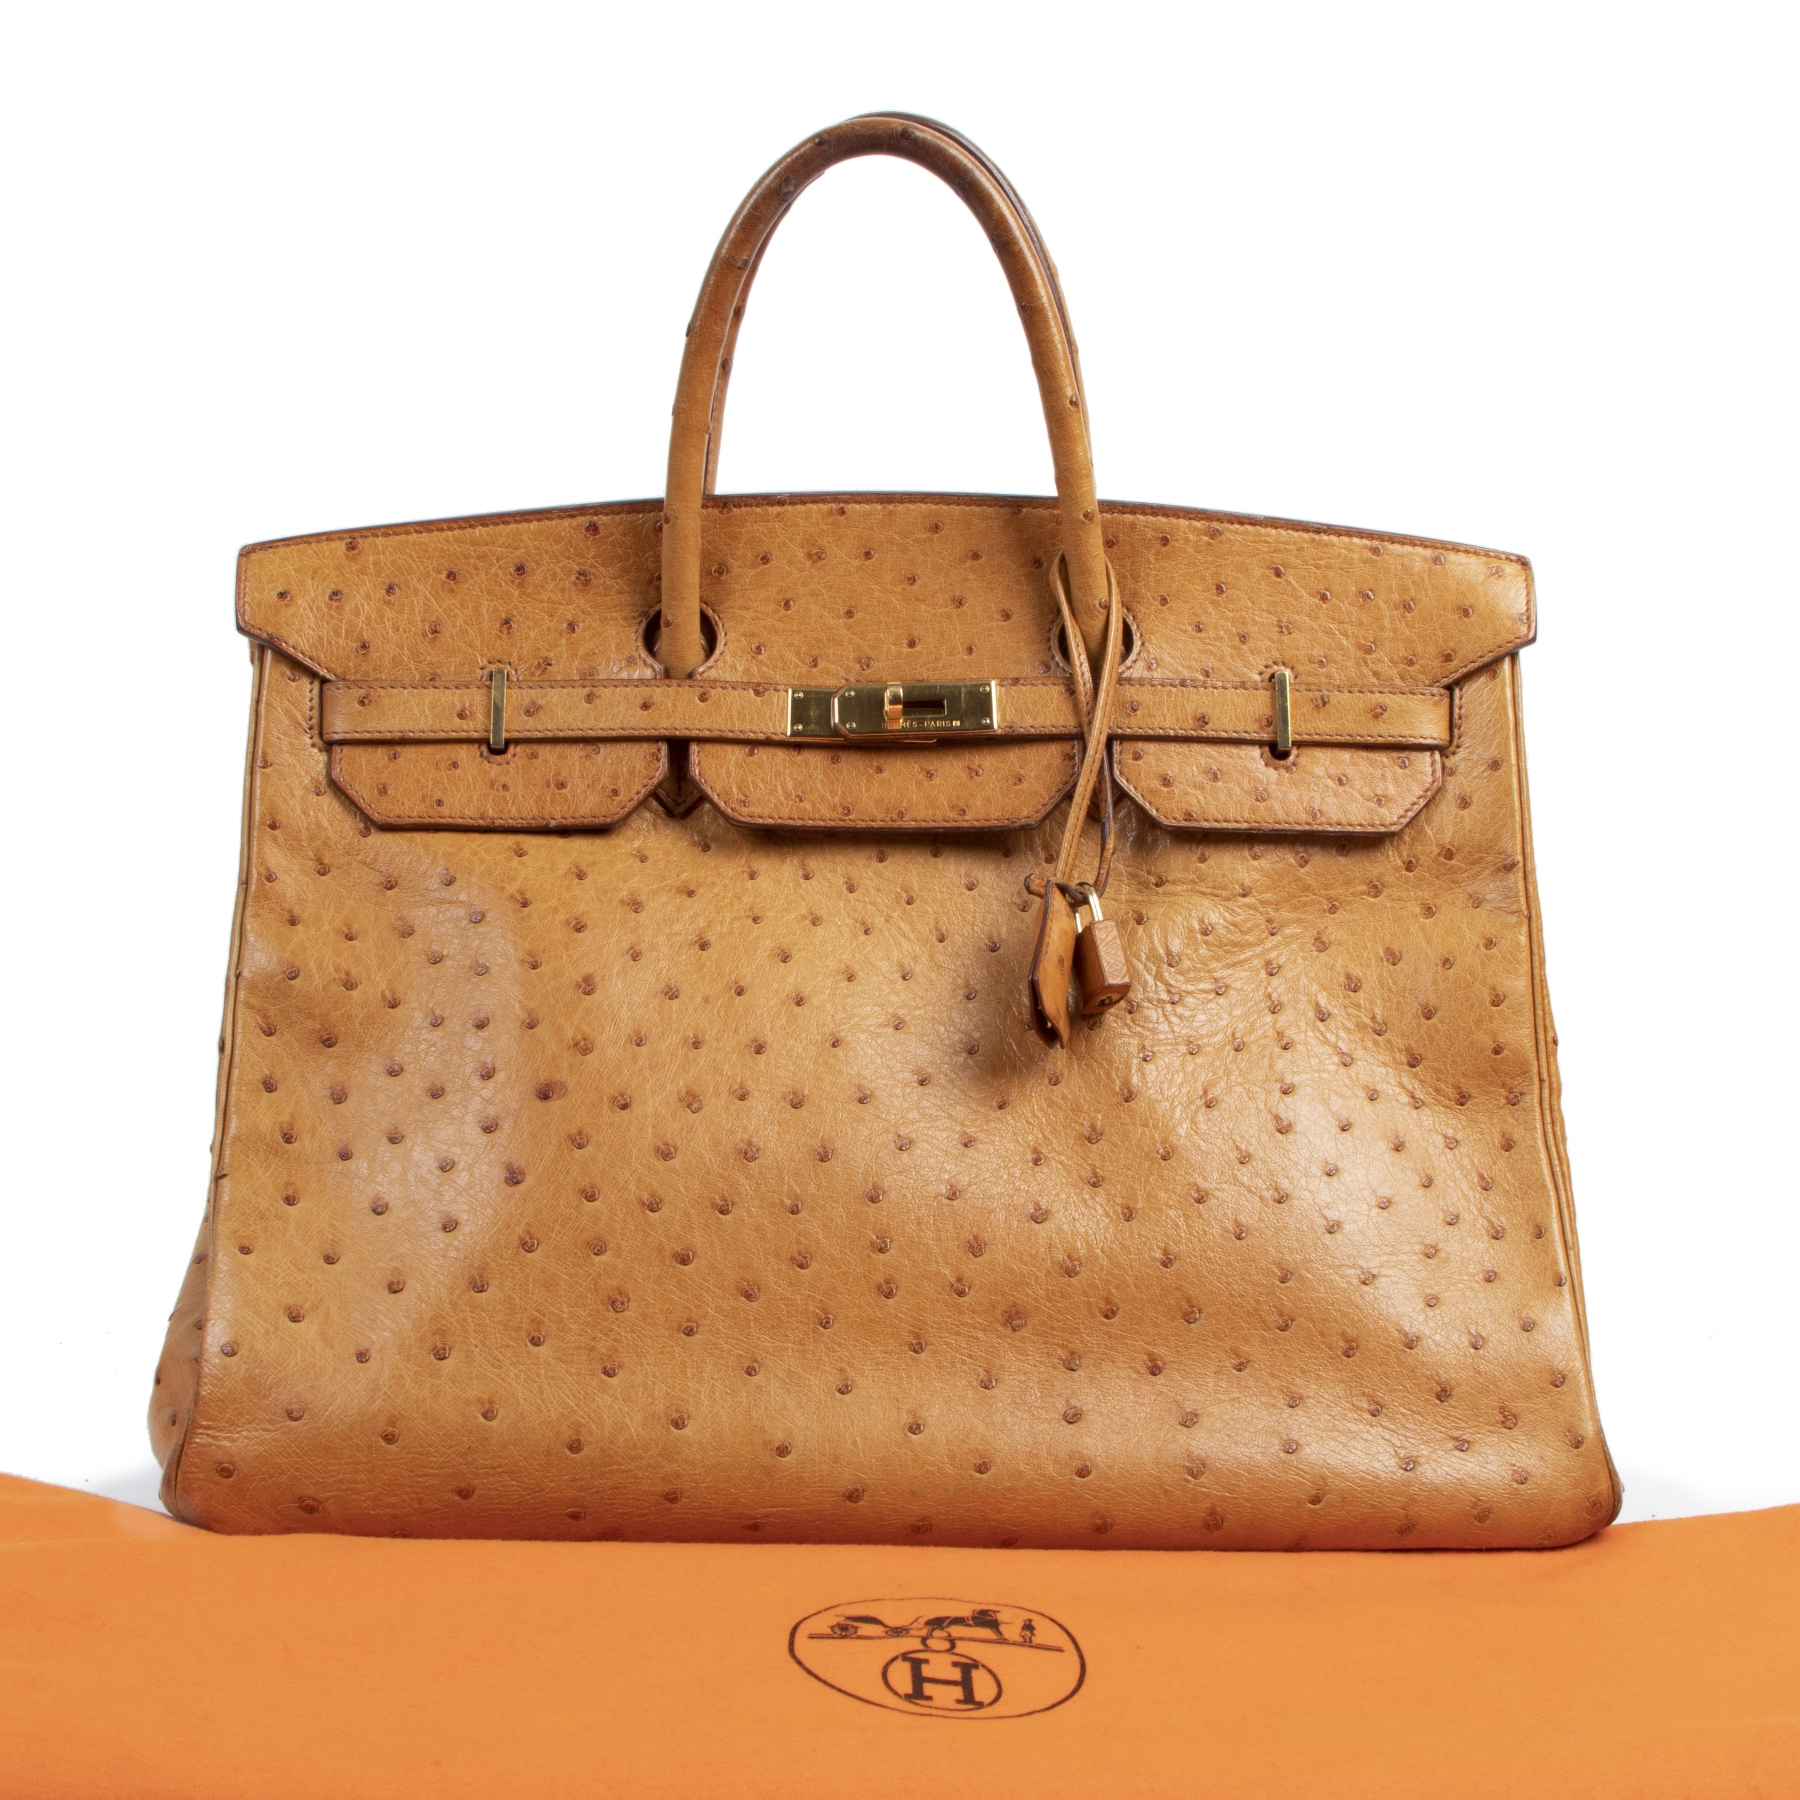 Hermès Birkin 40 Cognac Ostrich GHW for the best price at Labellov secondhand luxury